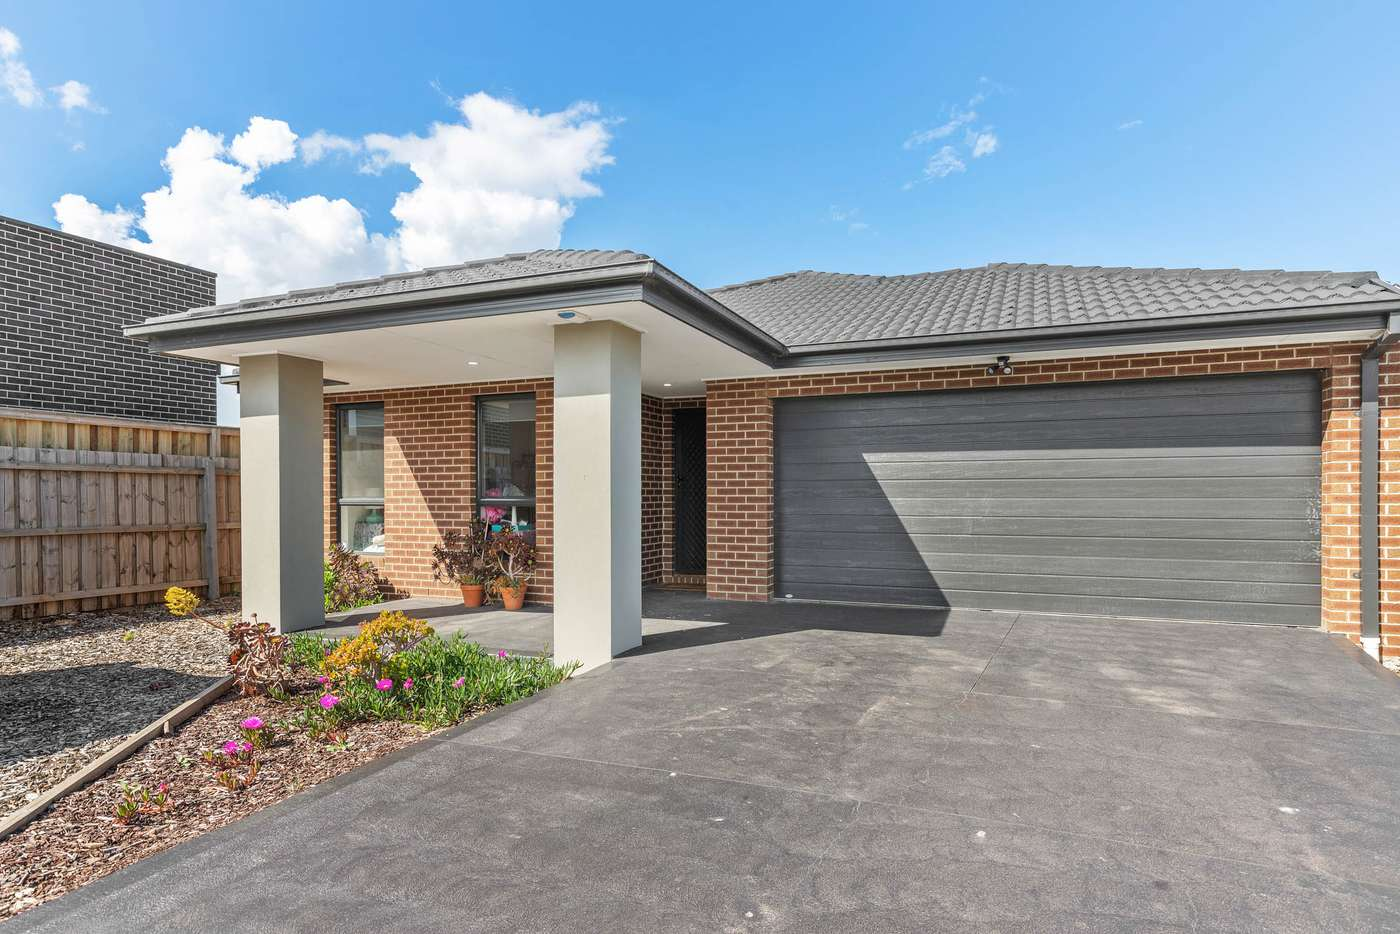 Main view of Homely house listing, 10 Rider Court, Tarneit VIC 3029